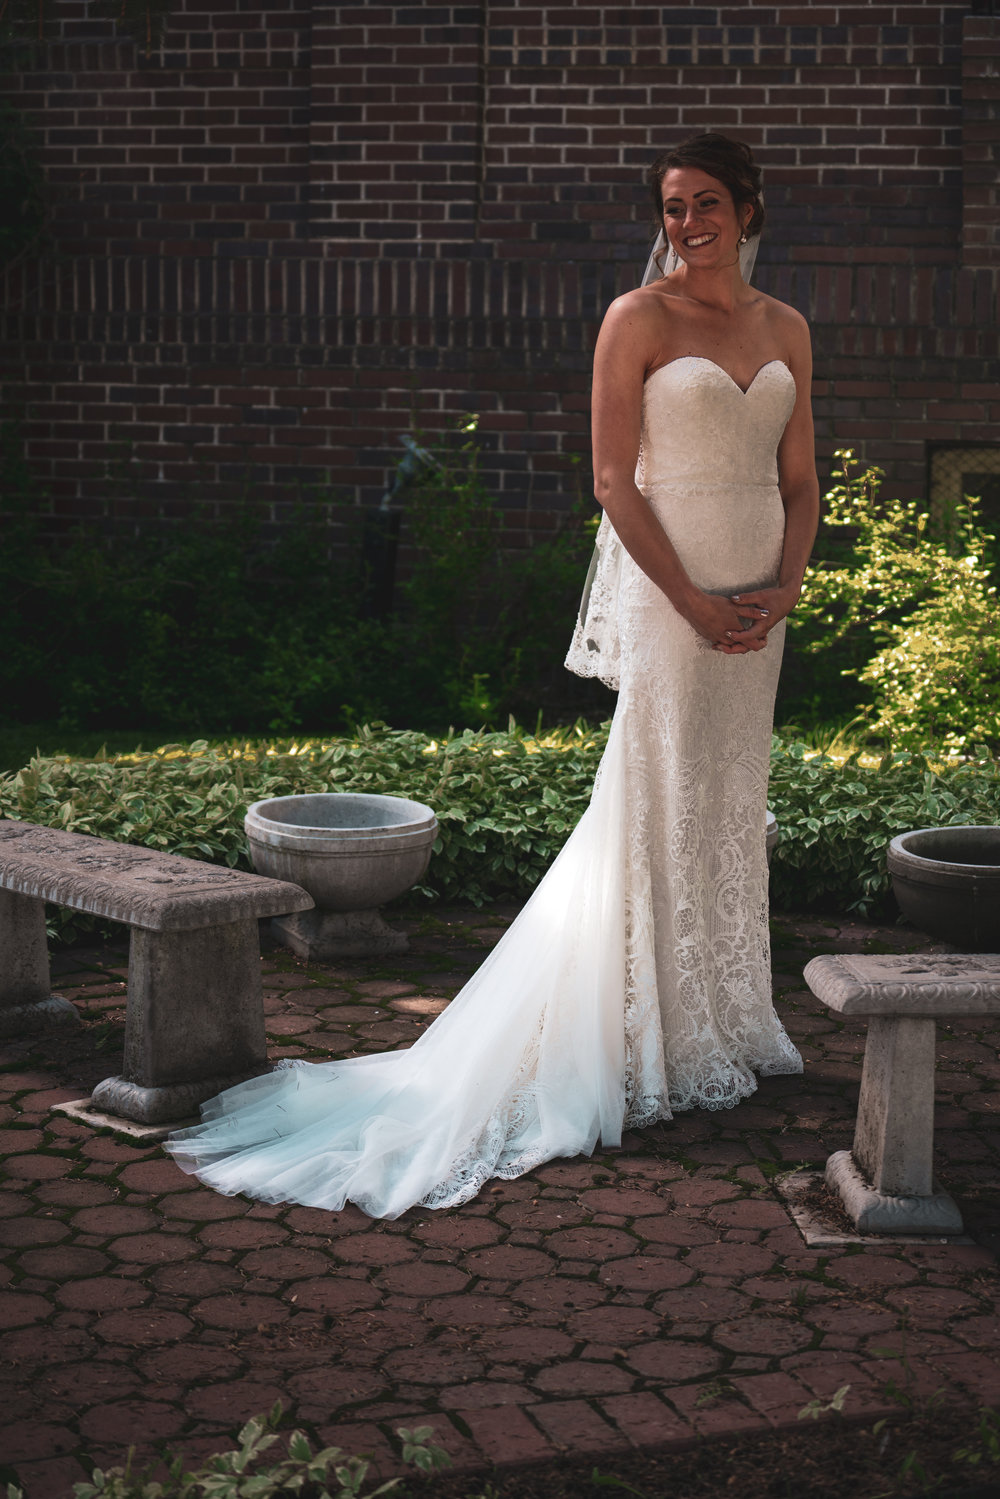 The bride photographed before her wedding in Lewistown, Montana.